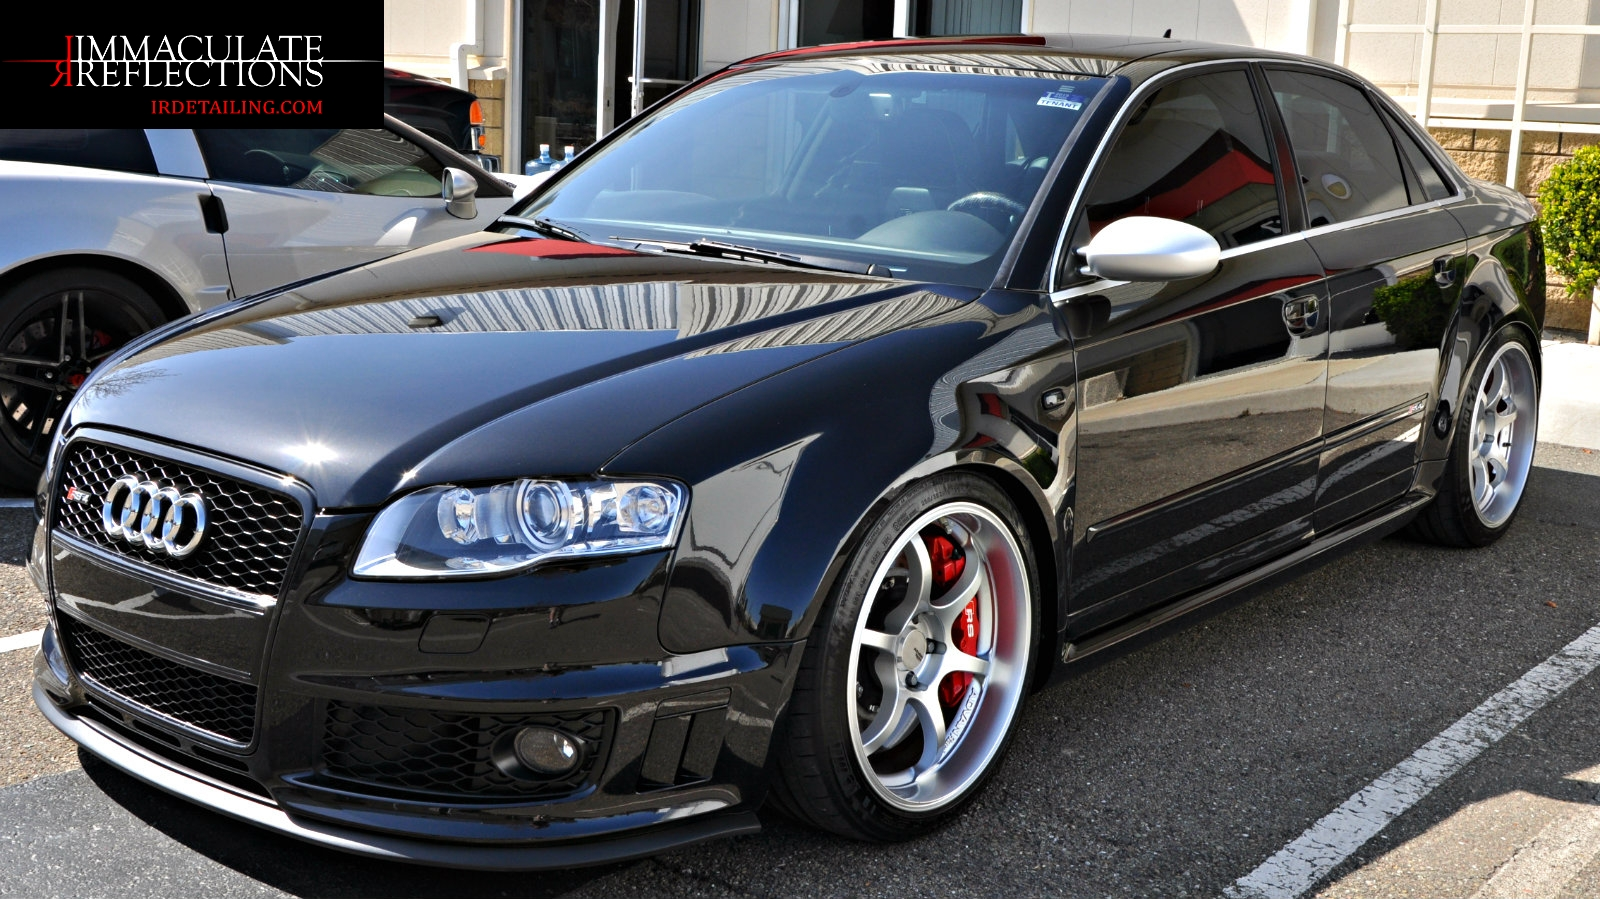 This Audi RS4 is a beautiful as she is fierce now thanks to irdetailing.com paint correction and CQuartz Finest Paint Coating detail services.